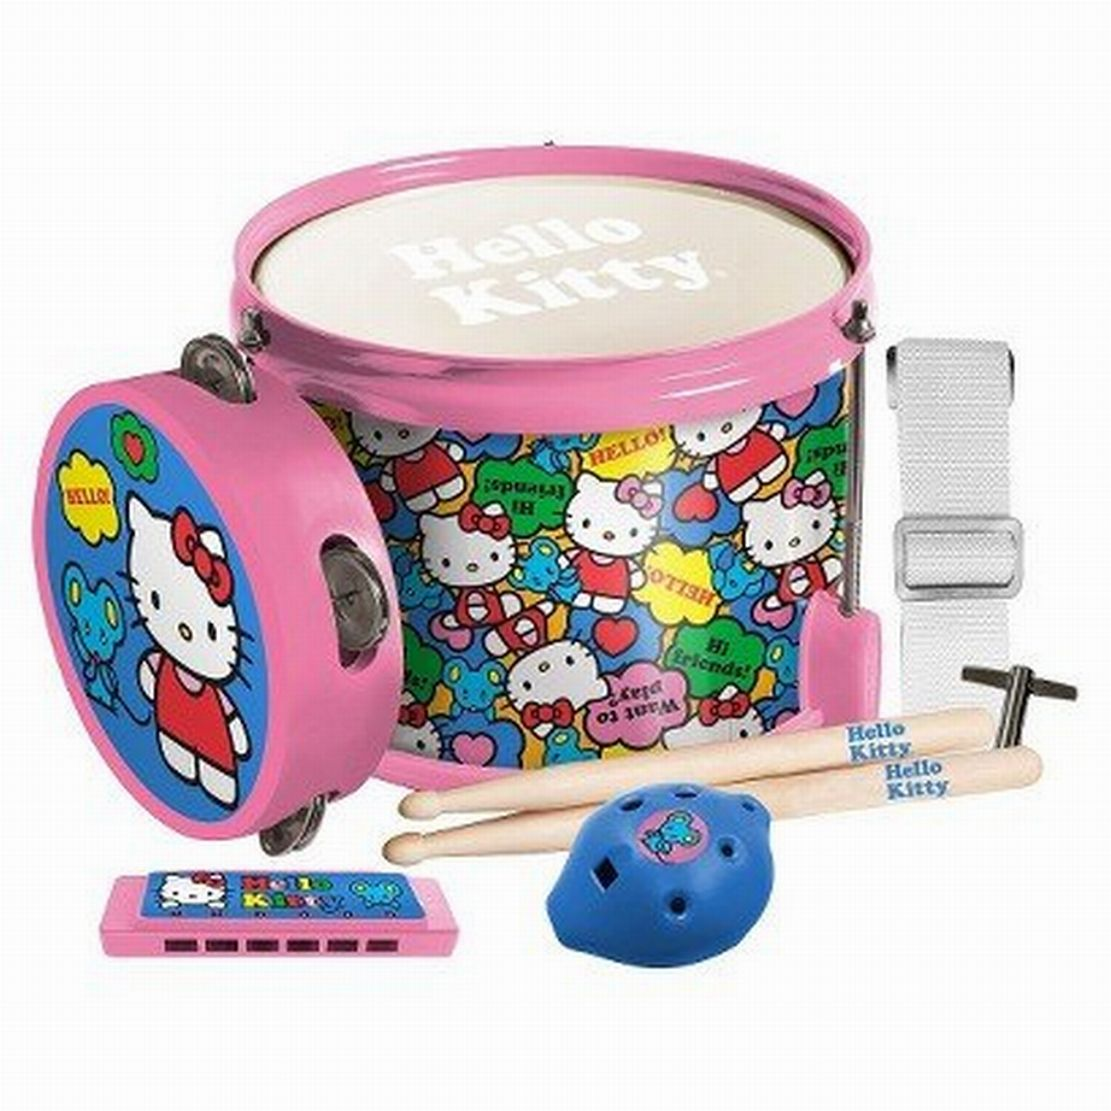 Hello Kitty Fun In A Drum First Act Musical Instrument Set Harmonica Tambourine